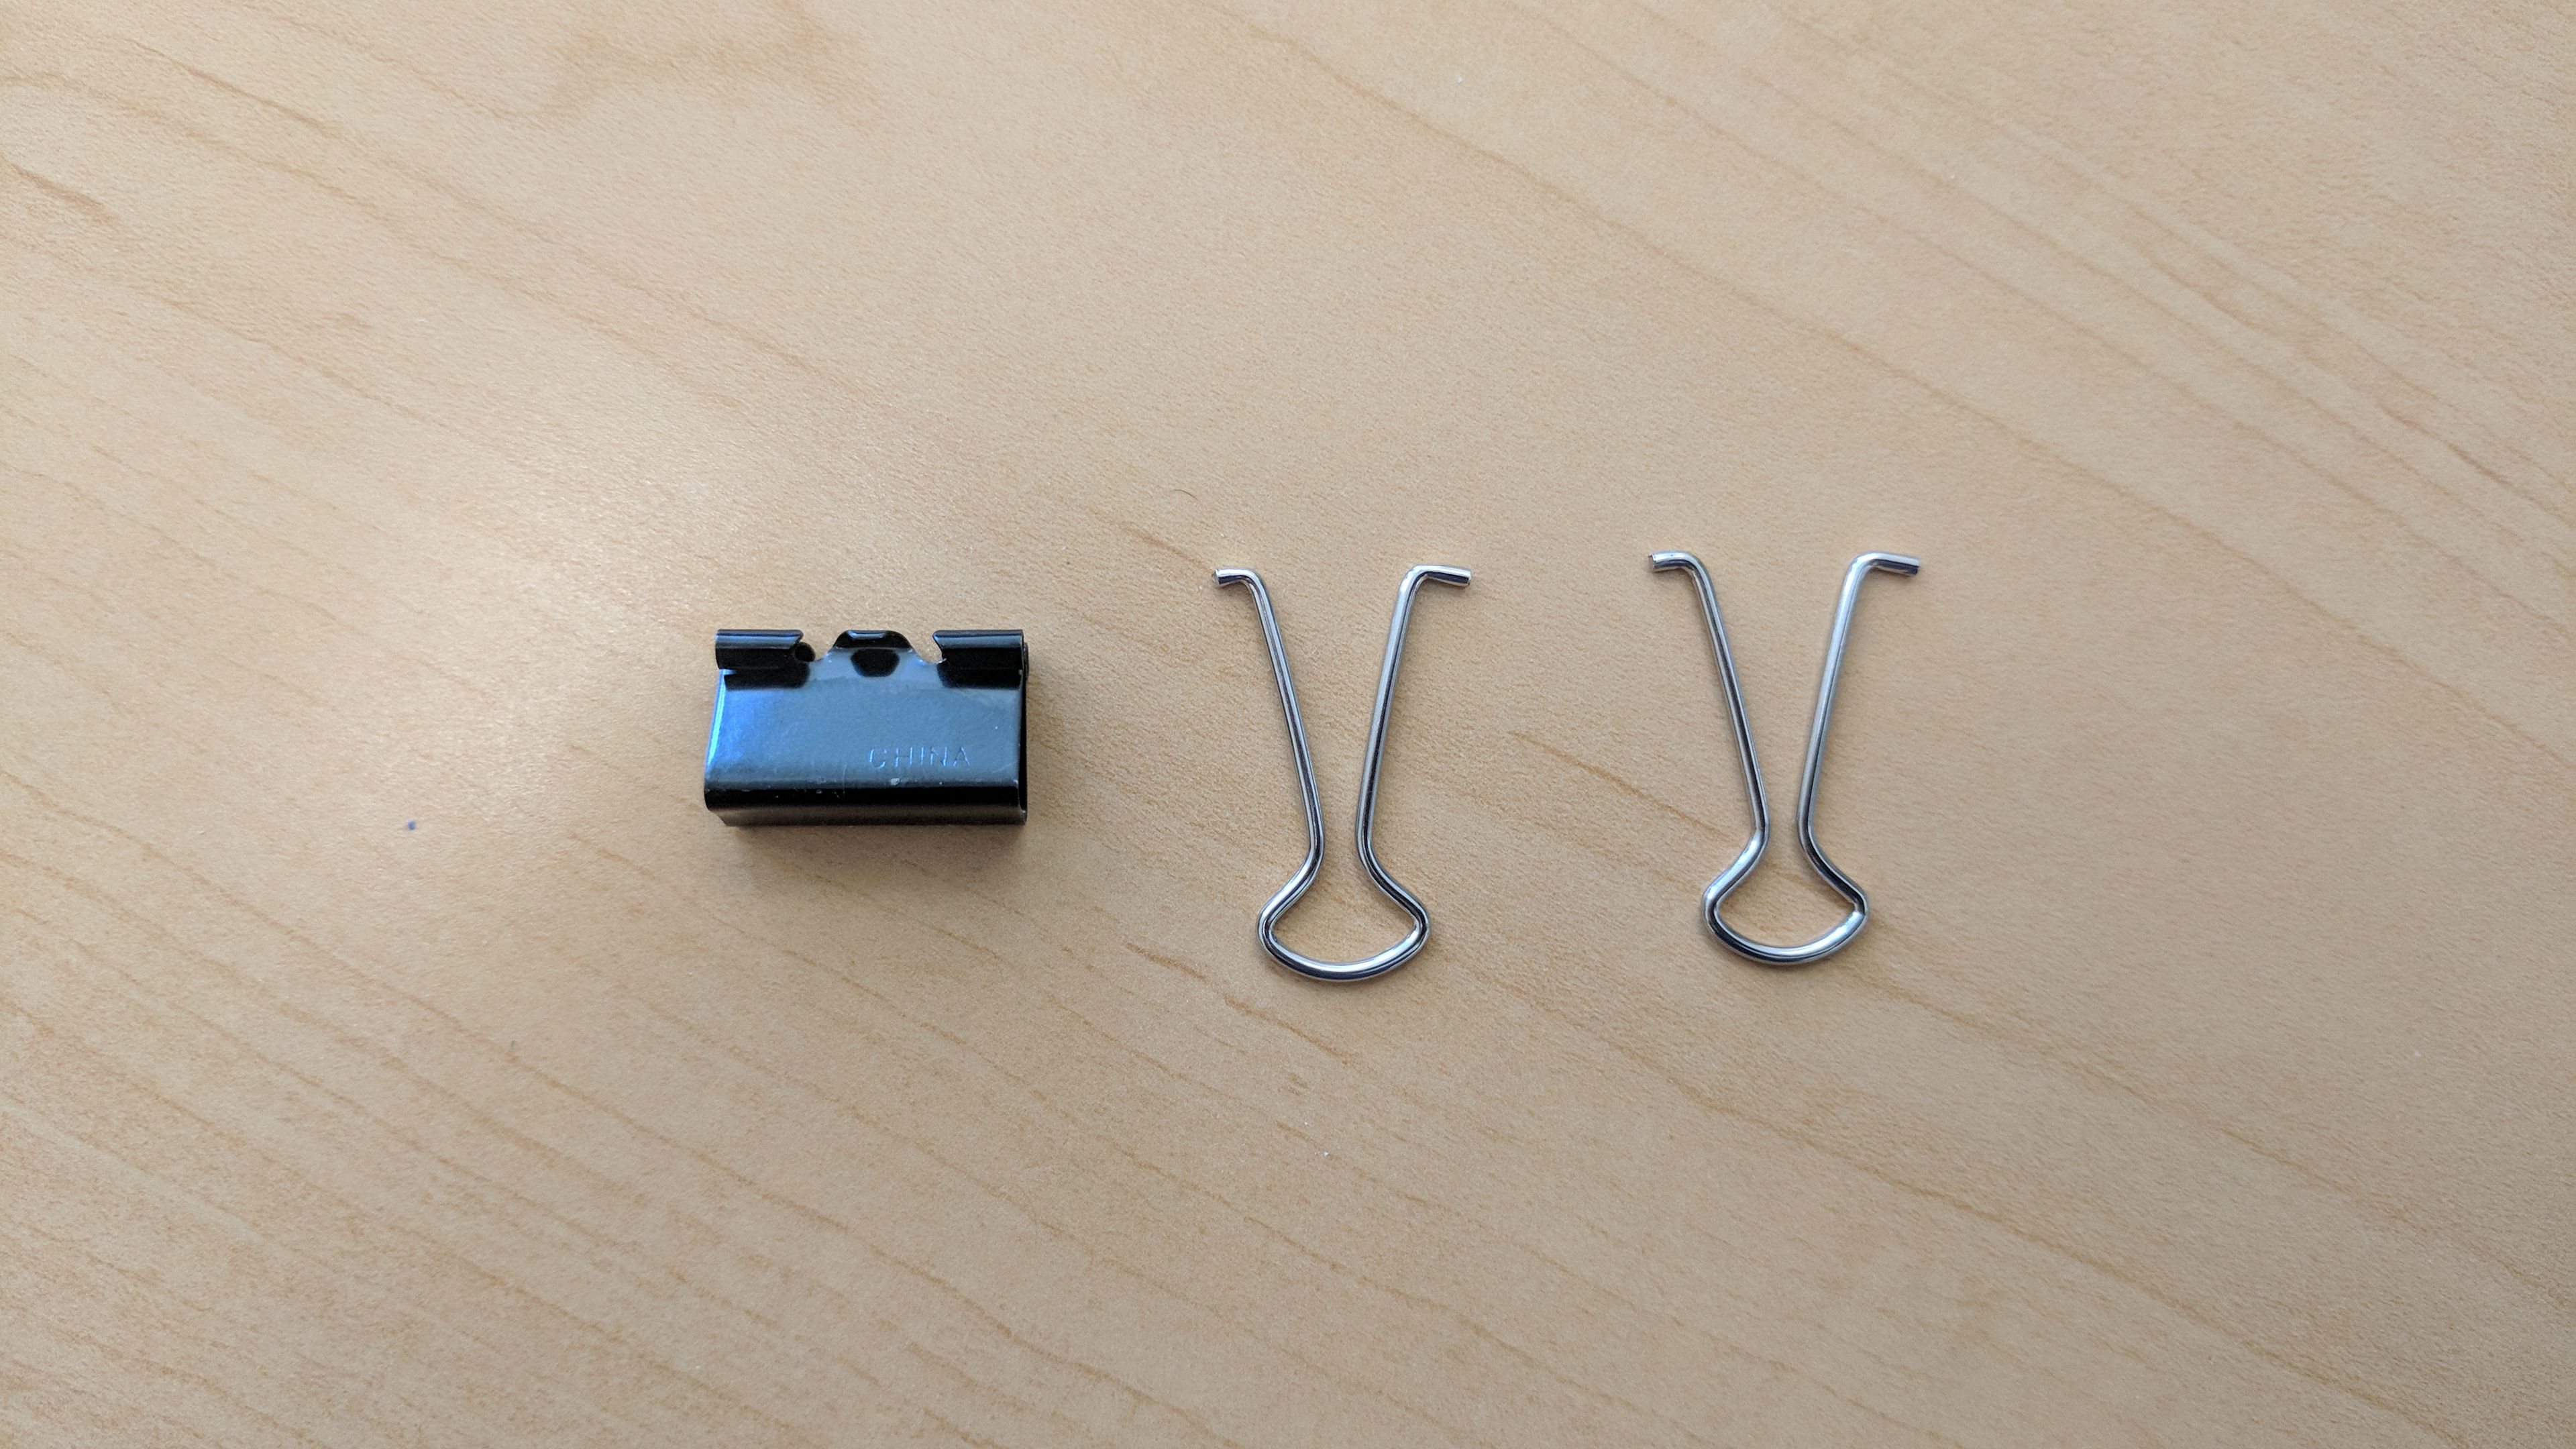 Picture of Remove Silver Handles From the Small Binder Clip